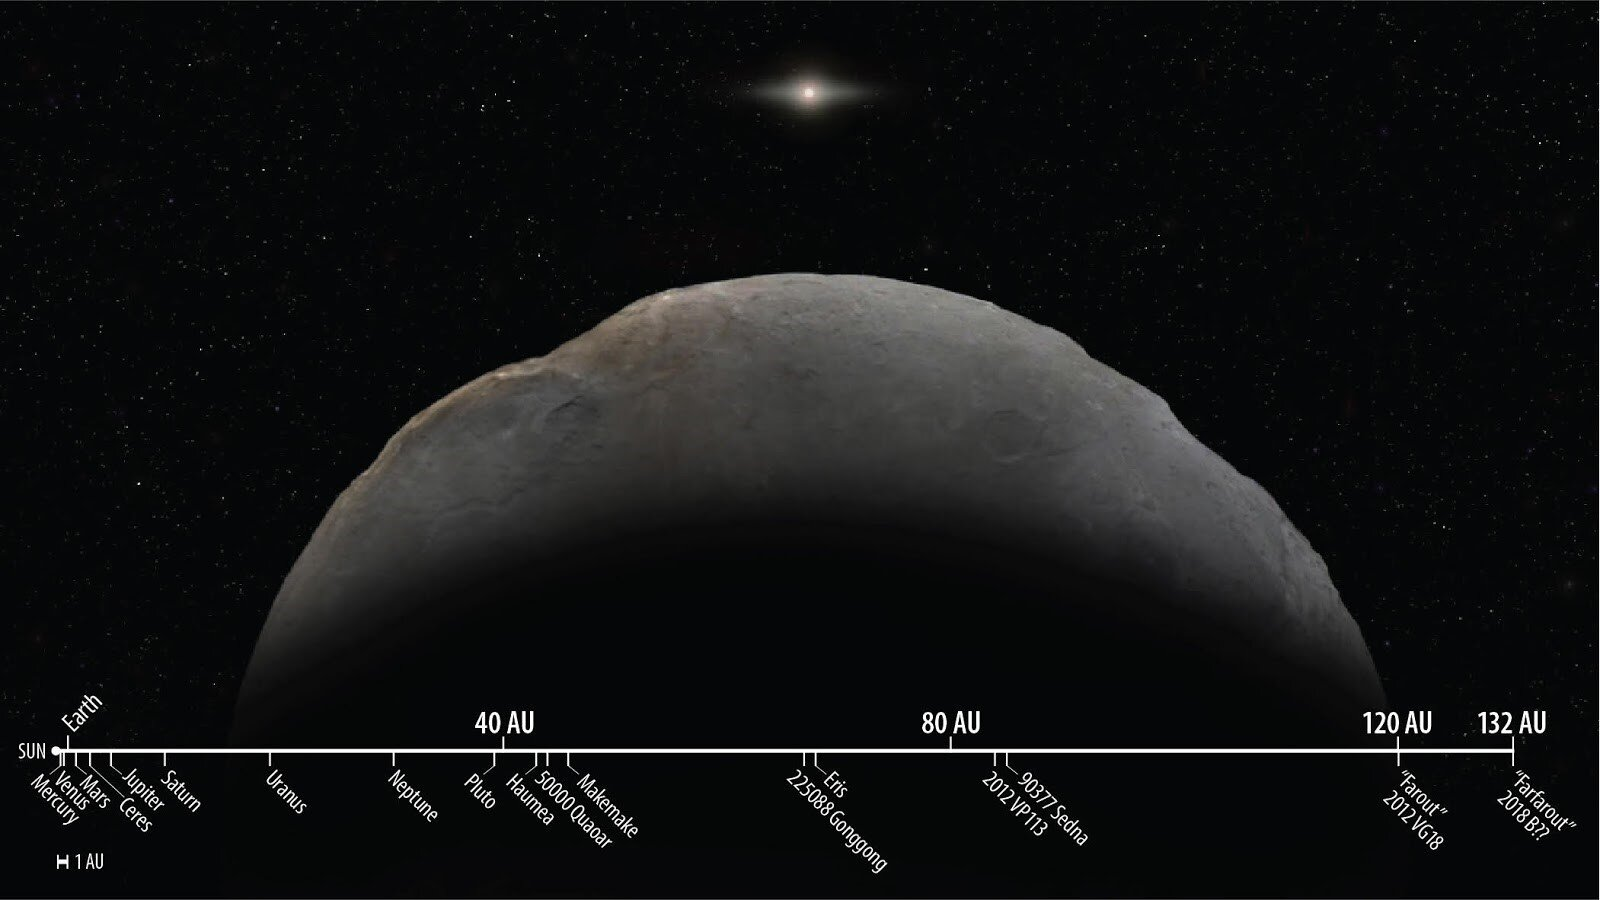 Astronomers confirm orbit of most distant object ever observed in our solar system